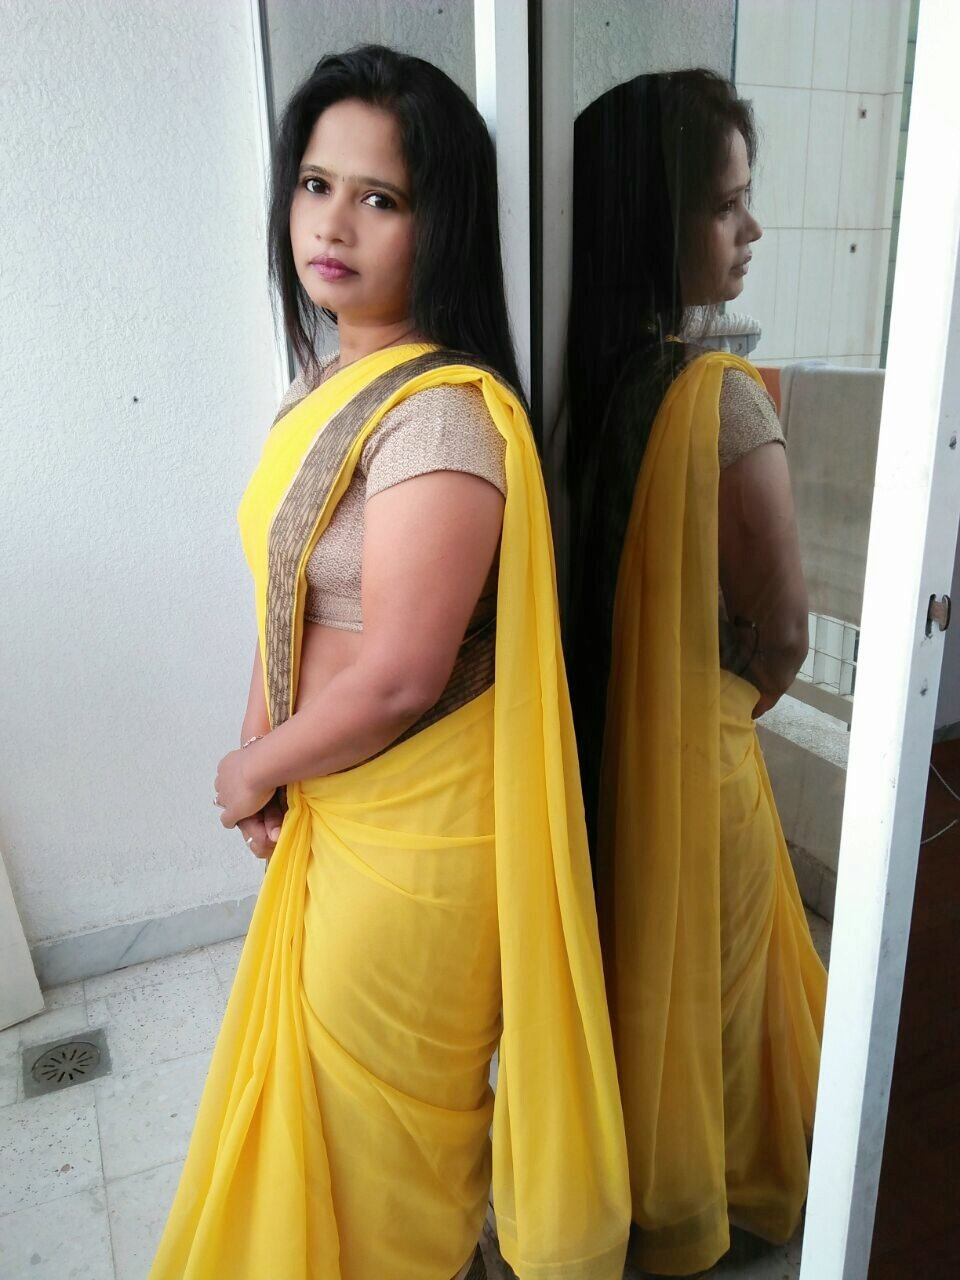 Archana Kerala South Indian Escort, Indian Escort In Singapore-2031